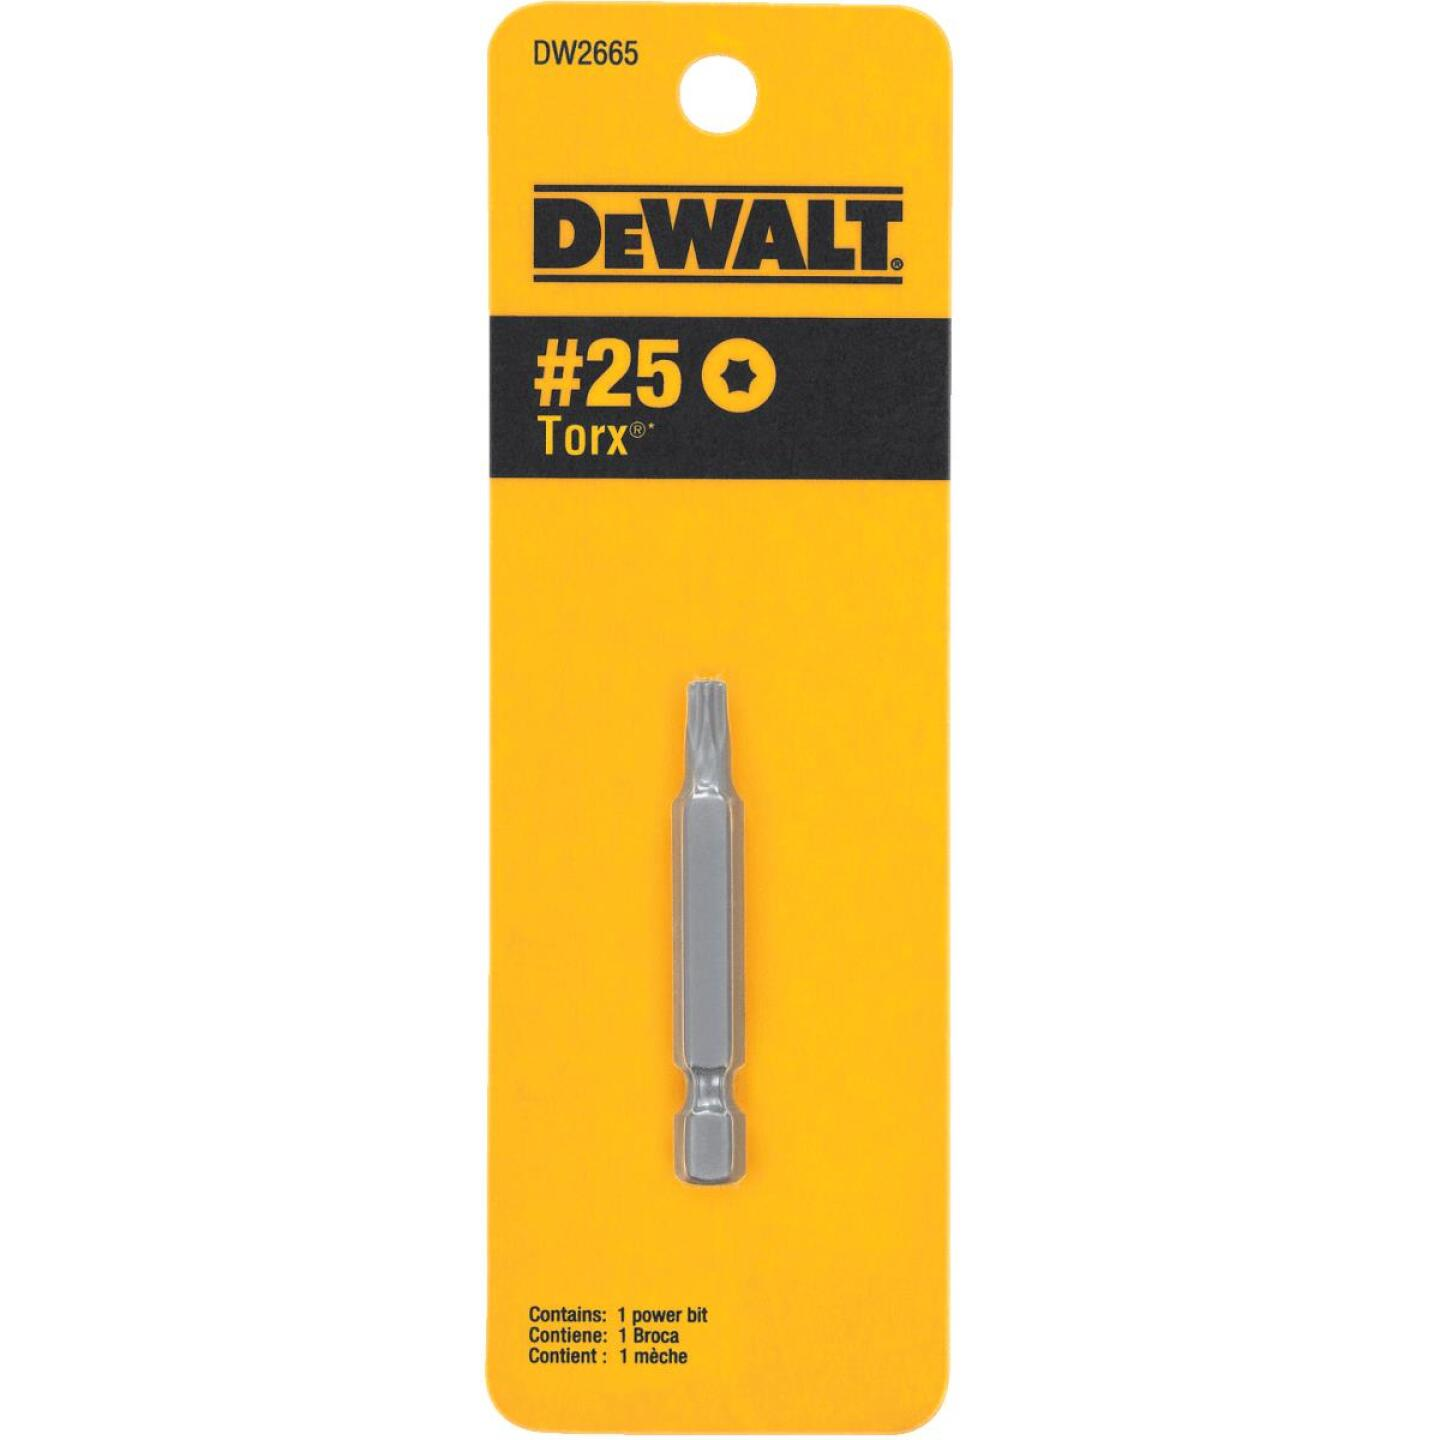 DeWalt T25 TORX 2 In. 1/4 In. Power Screwdriver Bit Image 1